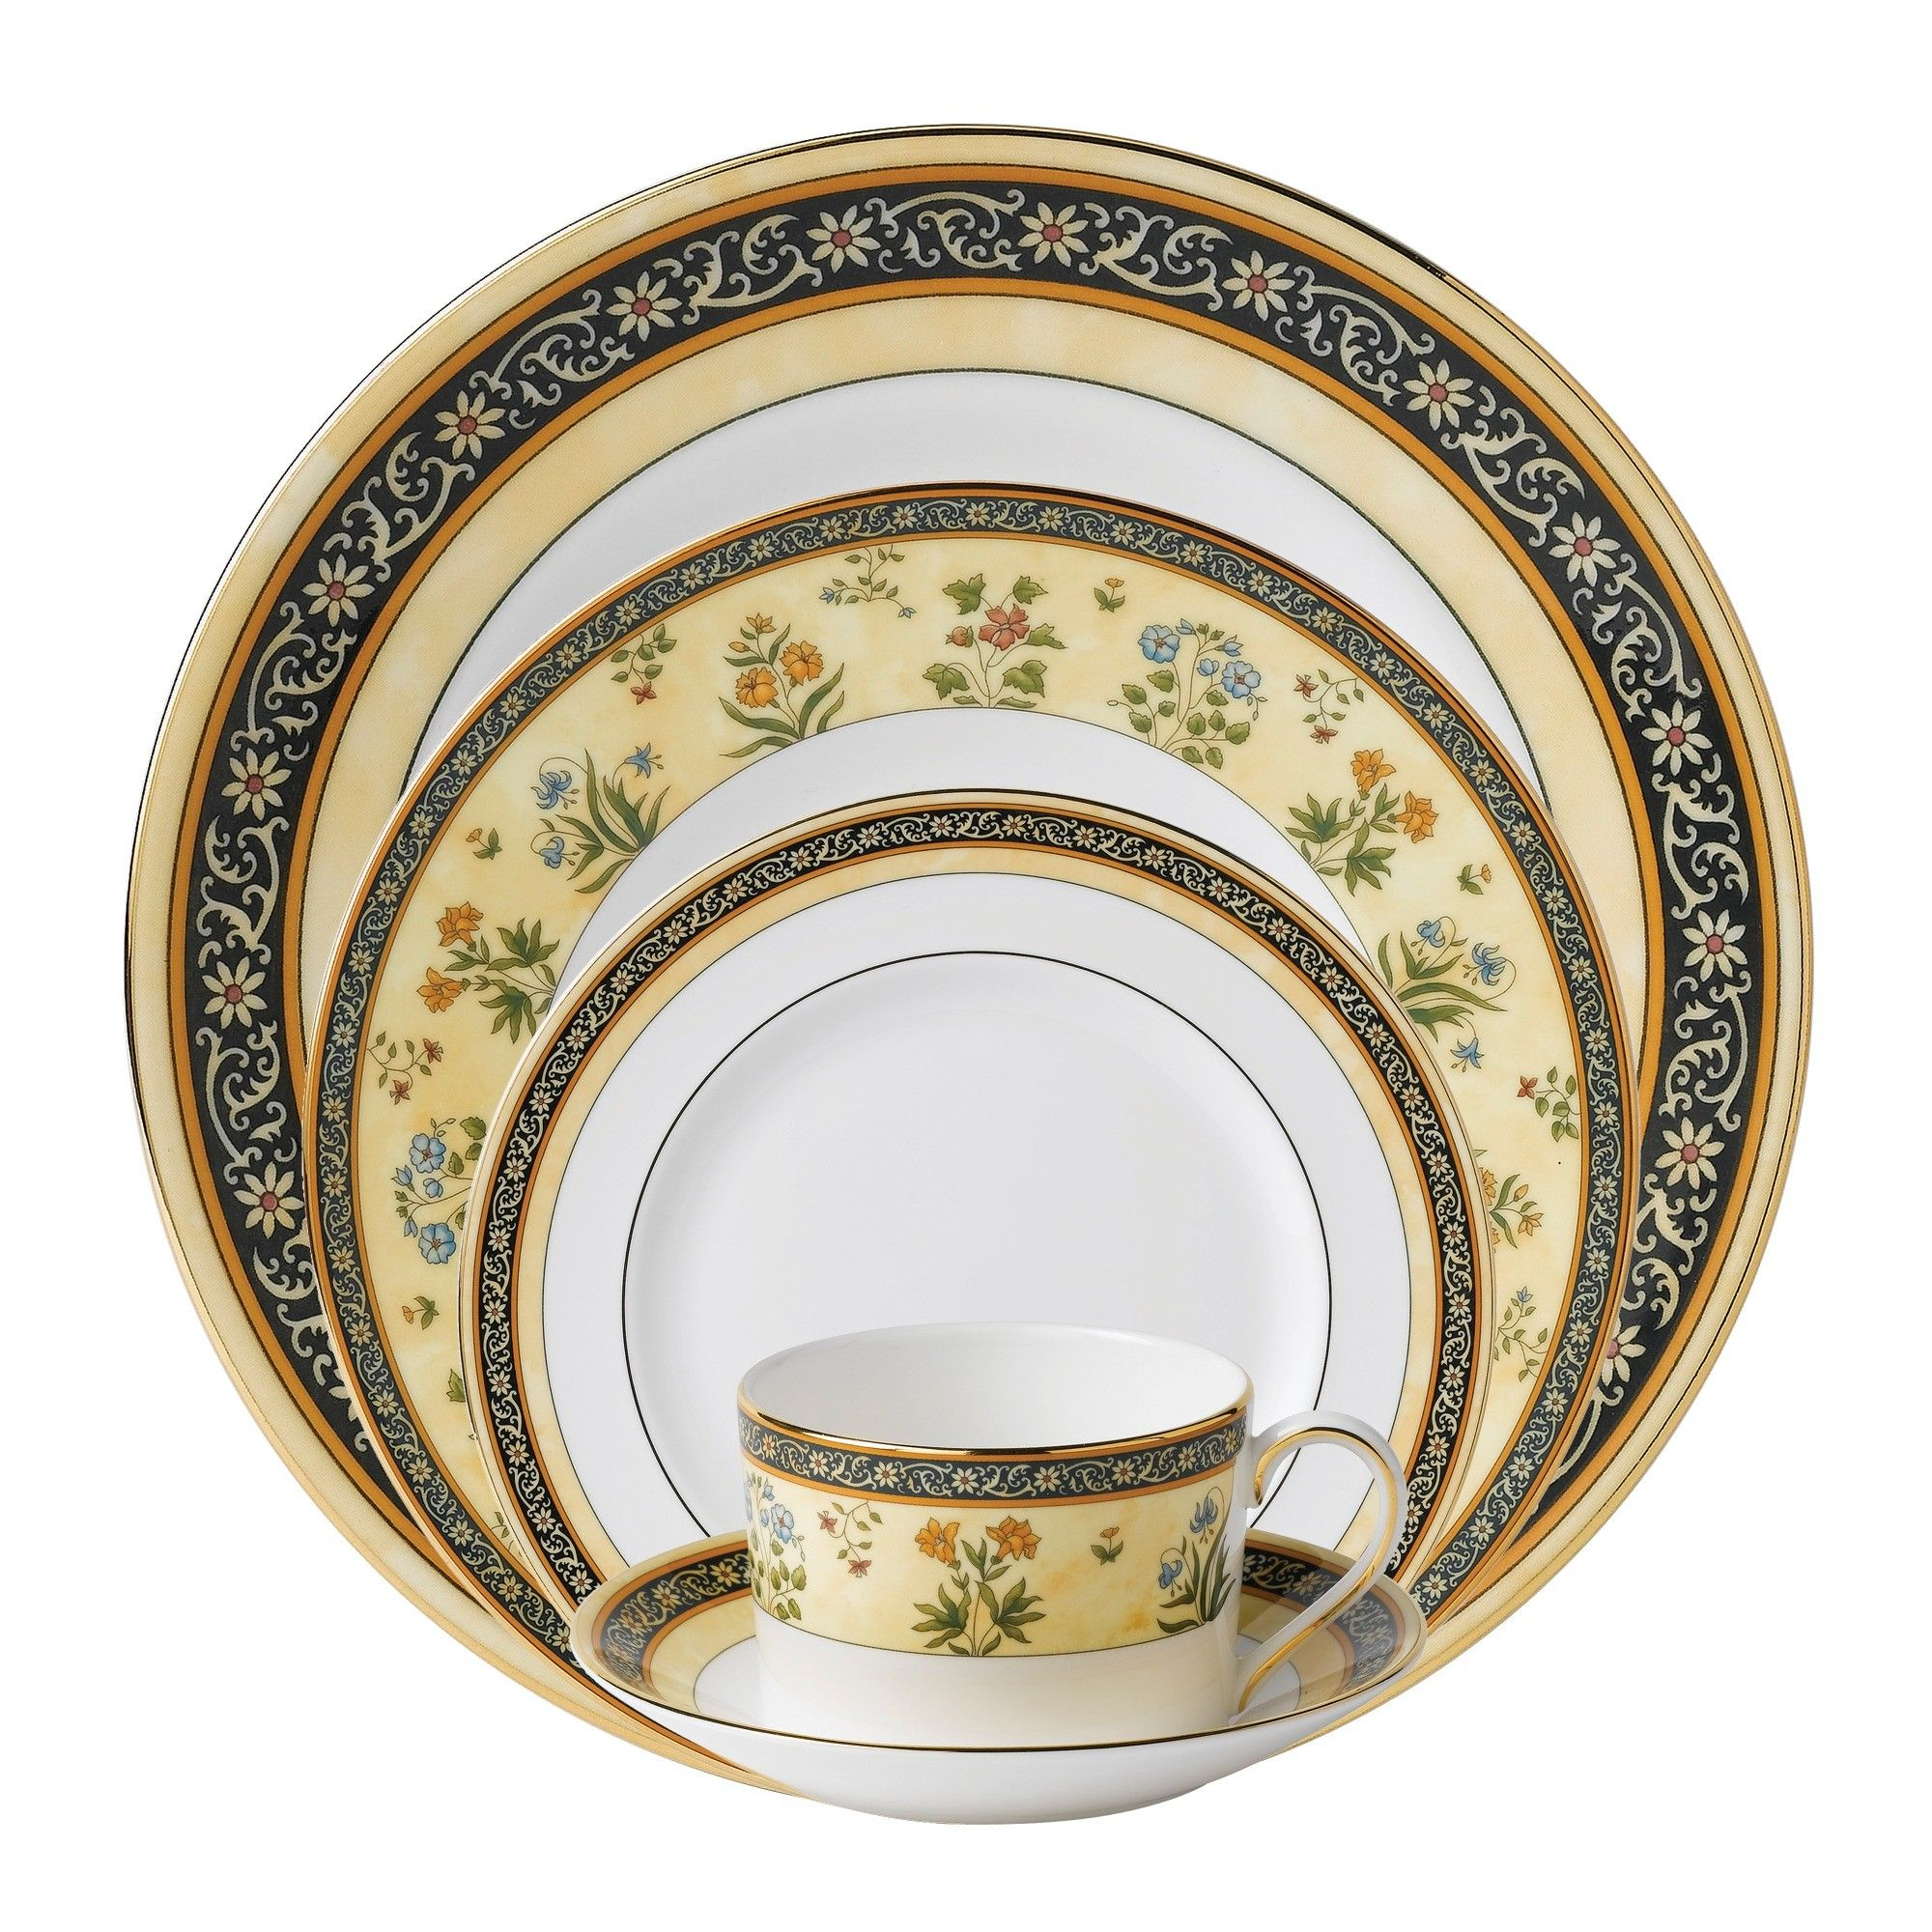 India Bone China 5 Piece Place Setting Service for 1